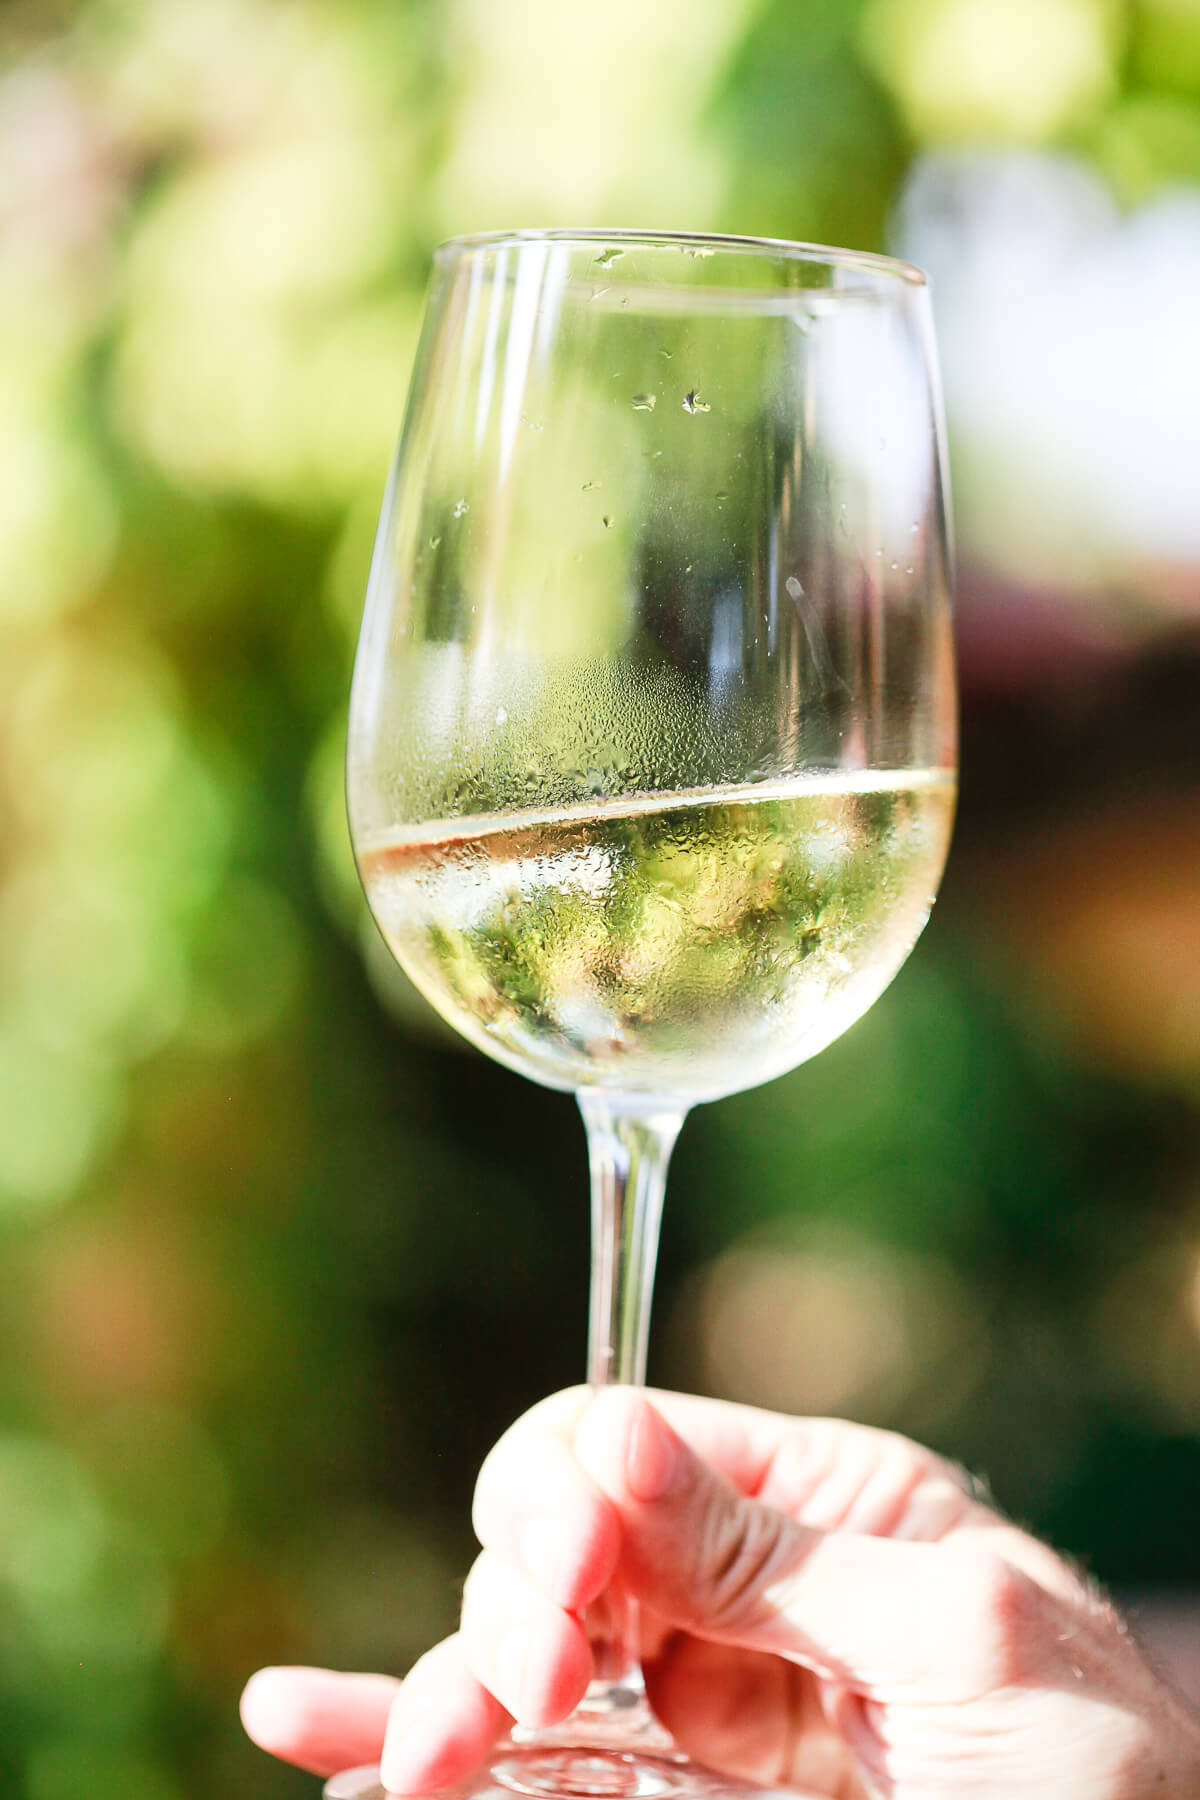 A close-up photo of a glass of natural, organic, keto white wine outside.